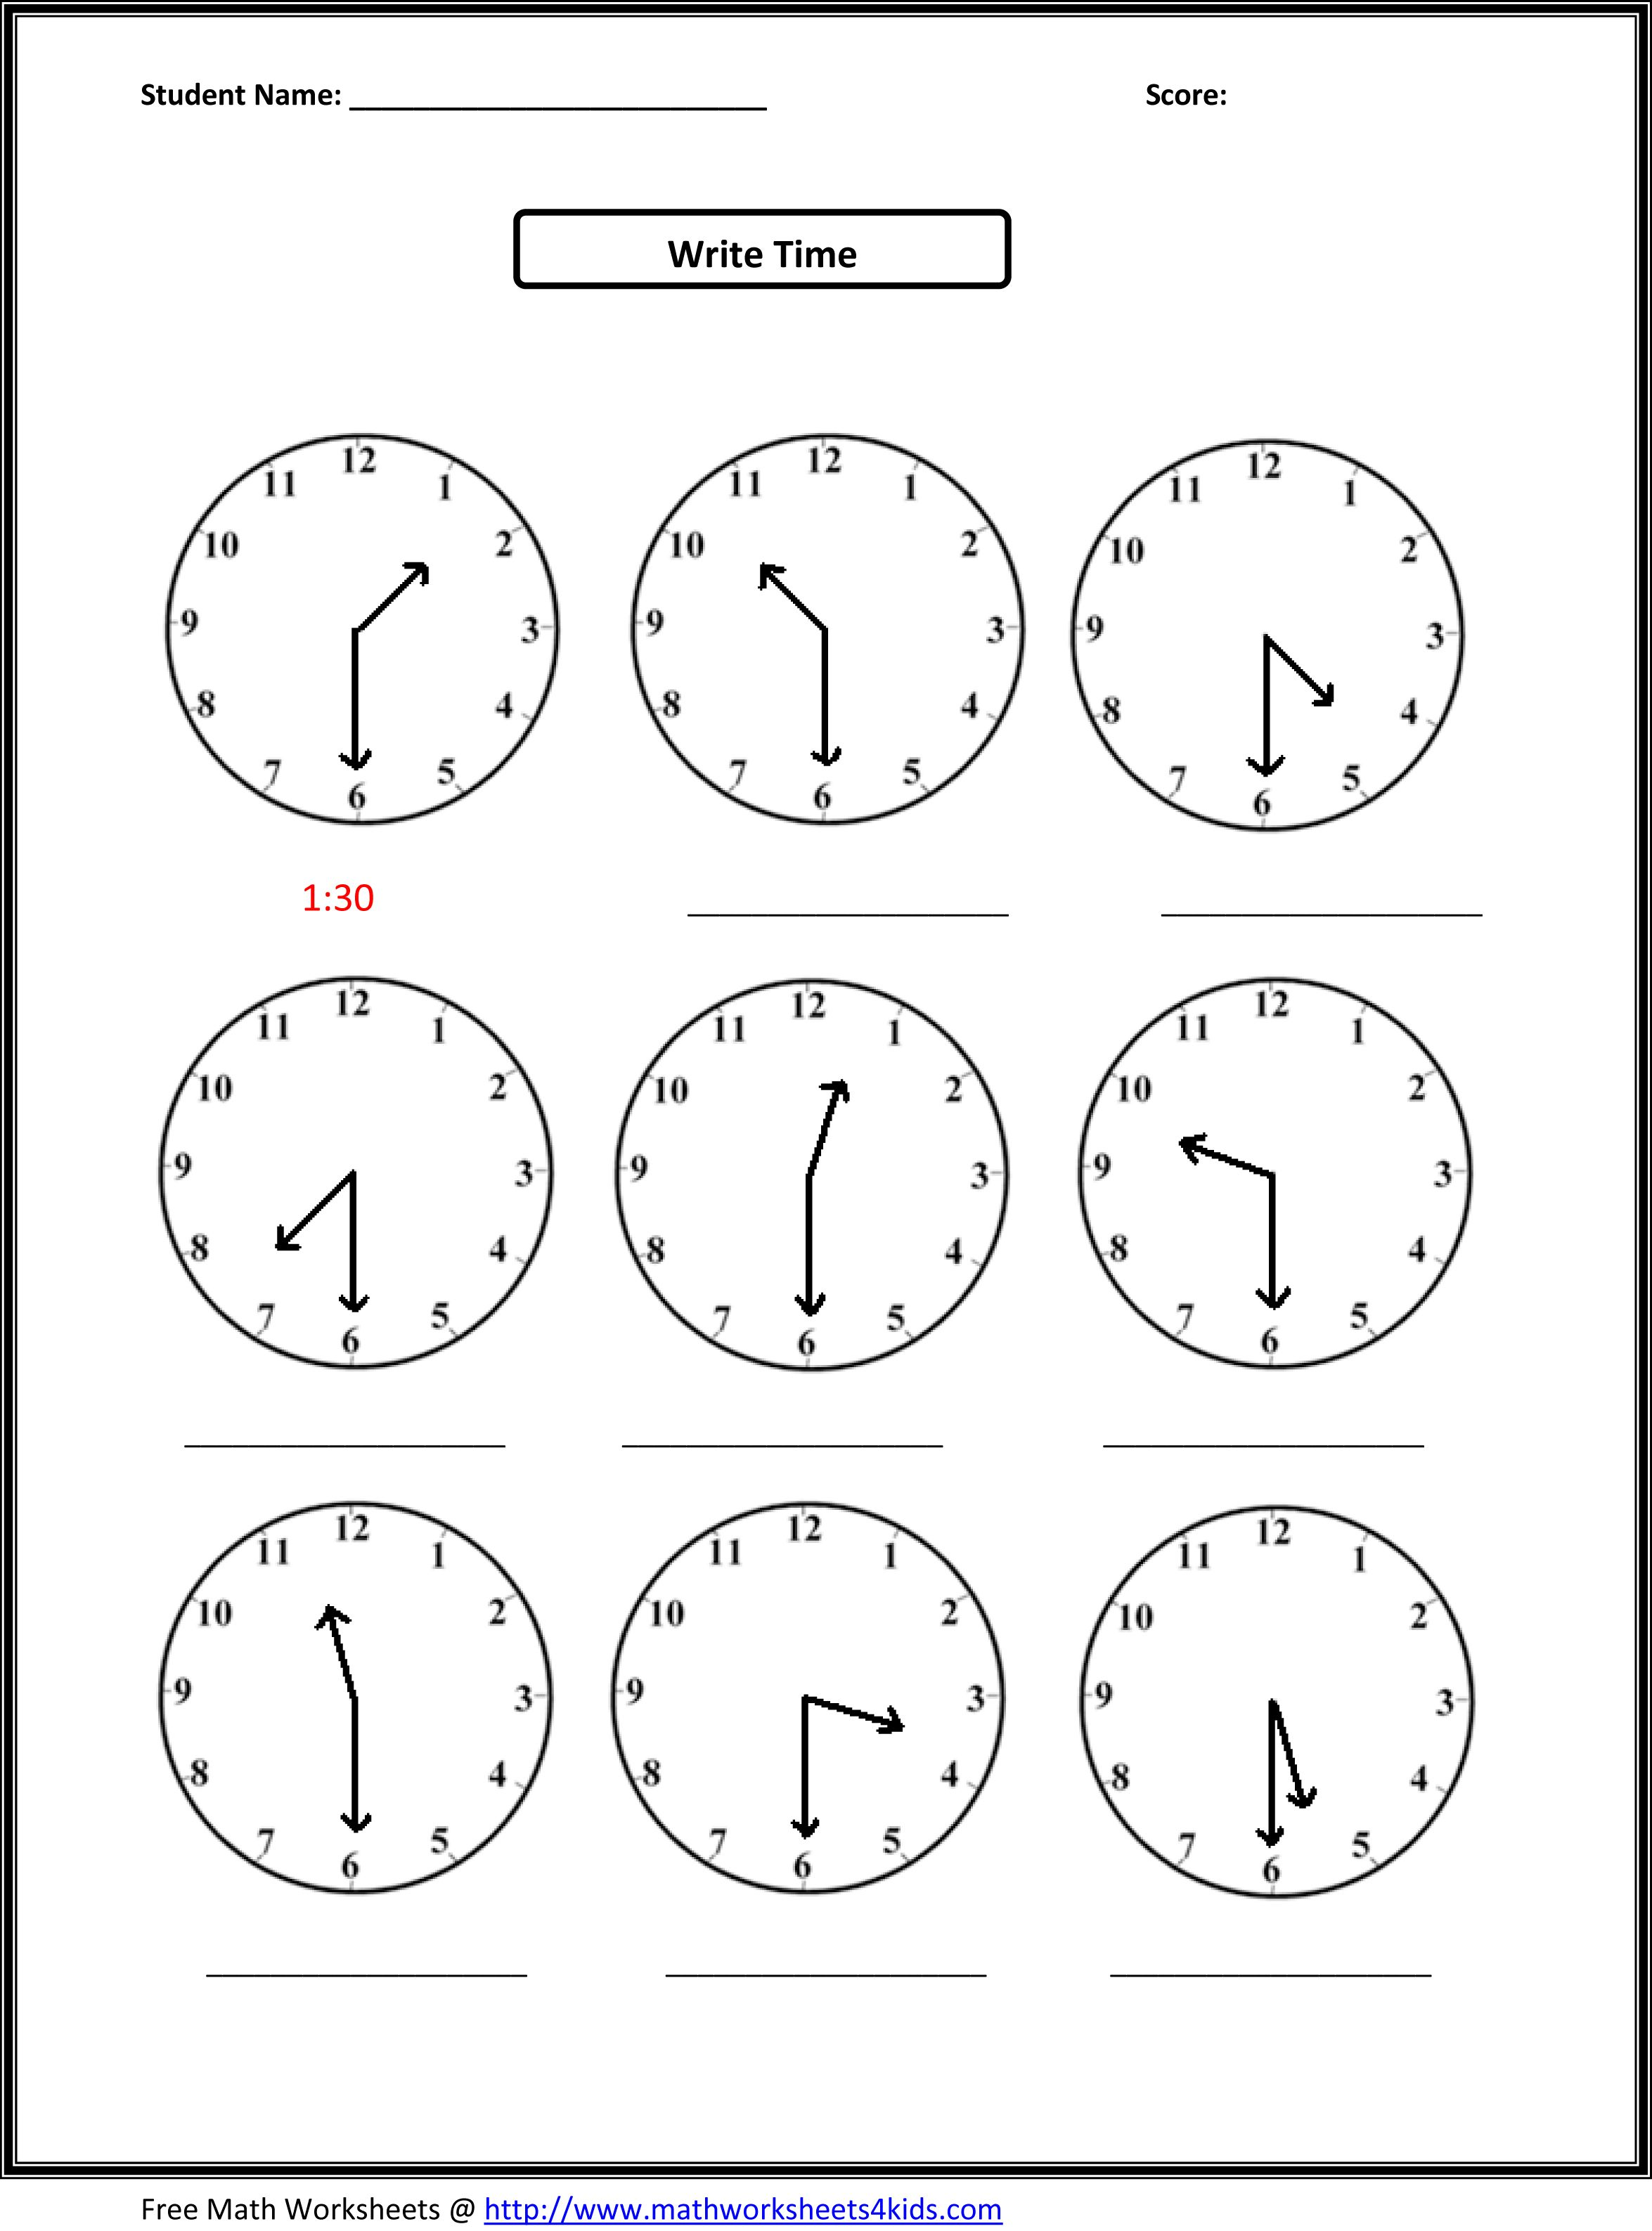 Weirdmailus  Marvelous Worksheet On Time For Grade   Reocurent With Gorgeous Free Printable Telling Time Worksheets Nd Grade  Reocurent With Cool Measuring Worksheets Kindergarten Also Italic Cursive Handwriting Worksheets In Addition Free Reading Worksheets Nd Grade And Worksheets On Decimals For Grade  As Well As Worksheet For Grade  Math Additionally Grade  English Worksheet From Reocurentcom With Weirdmailus  Gorgeous Worksheet On Time For Grade   Reocurent With Cool Free Printable Telling Time Worksheets Nd Grade  Reocurent And Marvelous Measuring Worksheets Kindergarten Also Italic Cursive Handwriting Worksheets In Addition Free Reading Worksheets Nd Grade From Reocurentcom